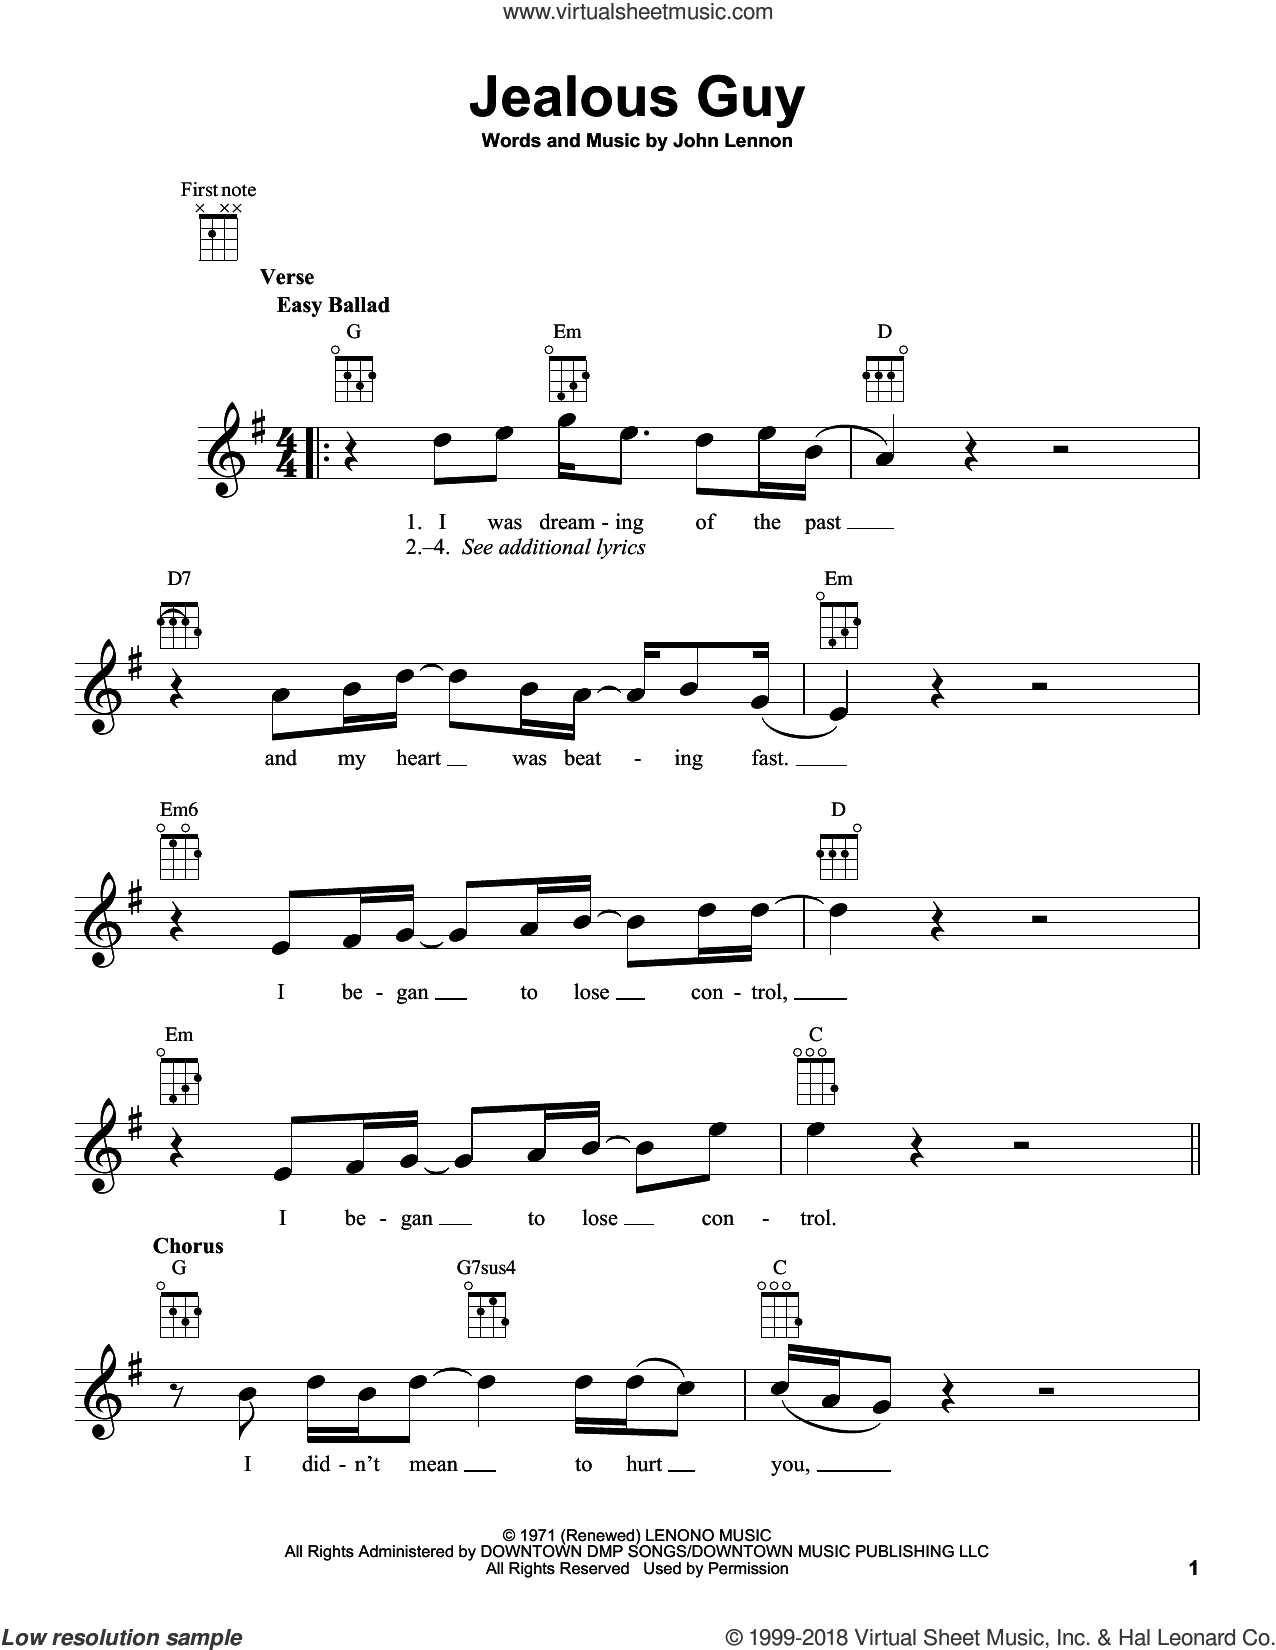 Jealous Guy sheet music for ukulele by John Lennon, intermediate skill level